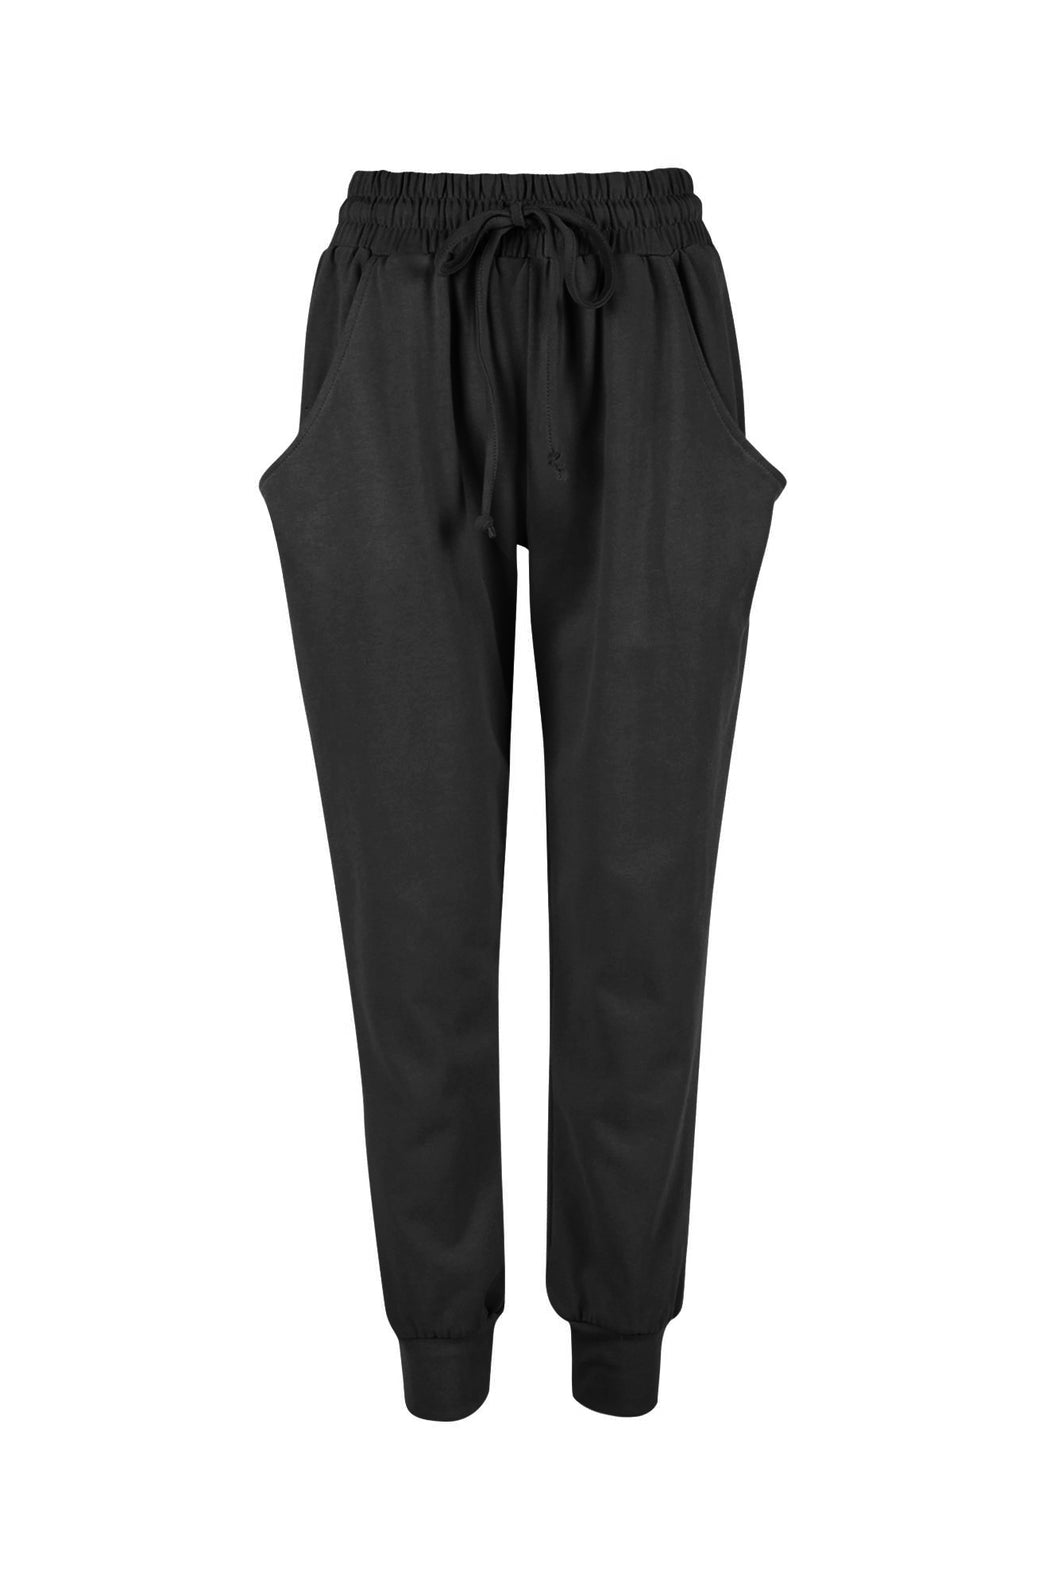 Ketz-ke Stage Pant - Black | Shop Ketz-ke at Wallace & Gibbs NZ